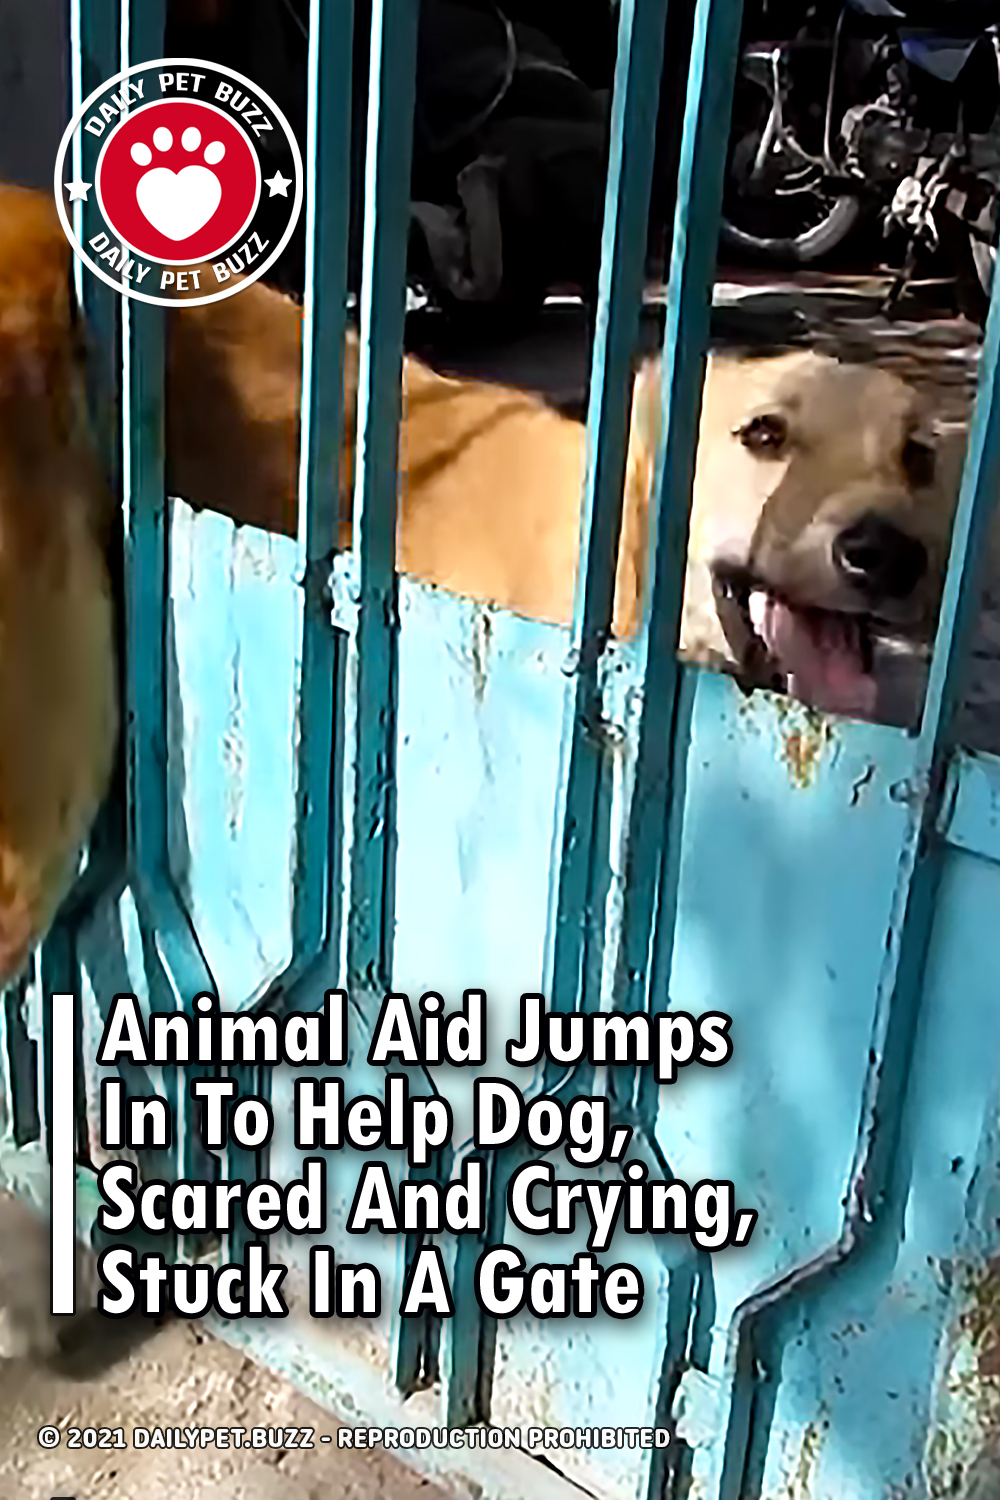 Animal Aid Jumps In To Help Dog, Scared And Crying, Stuck In A Gate